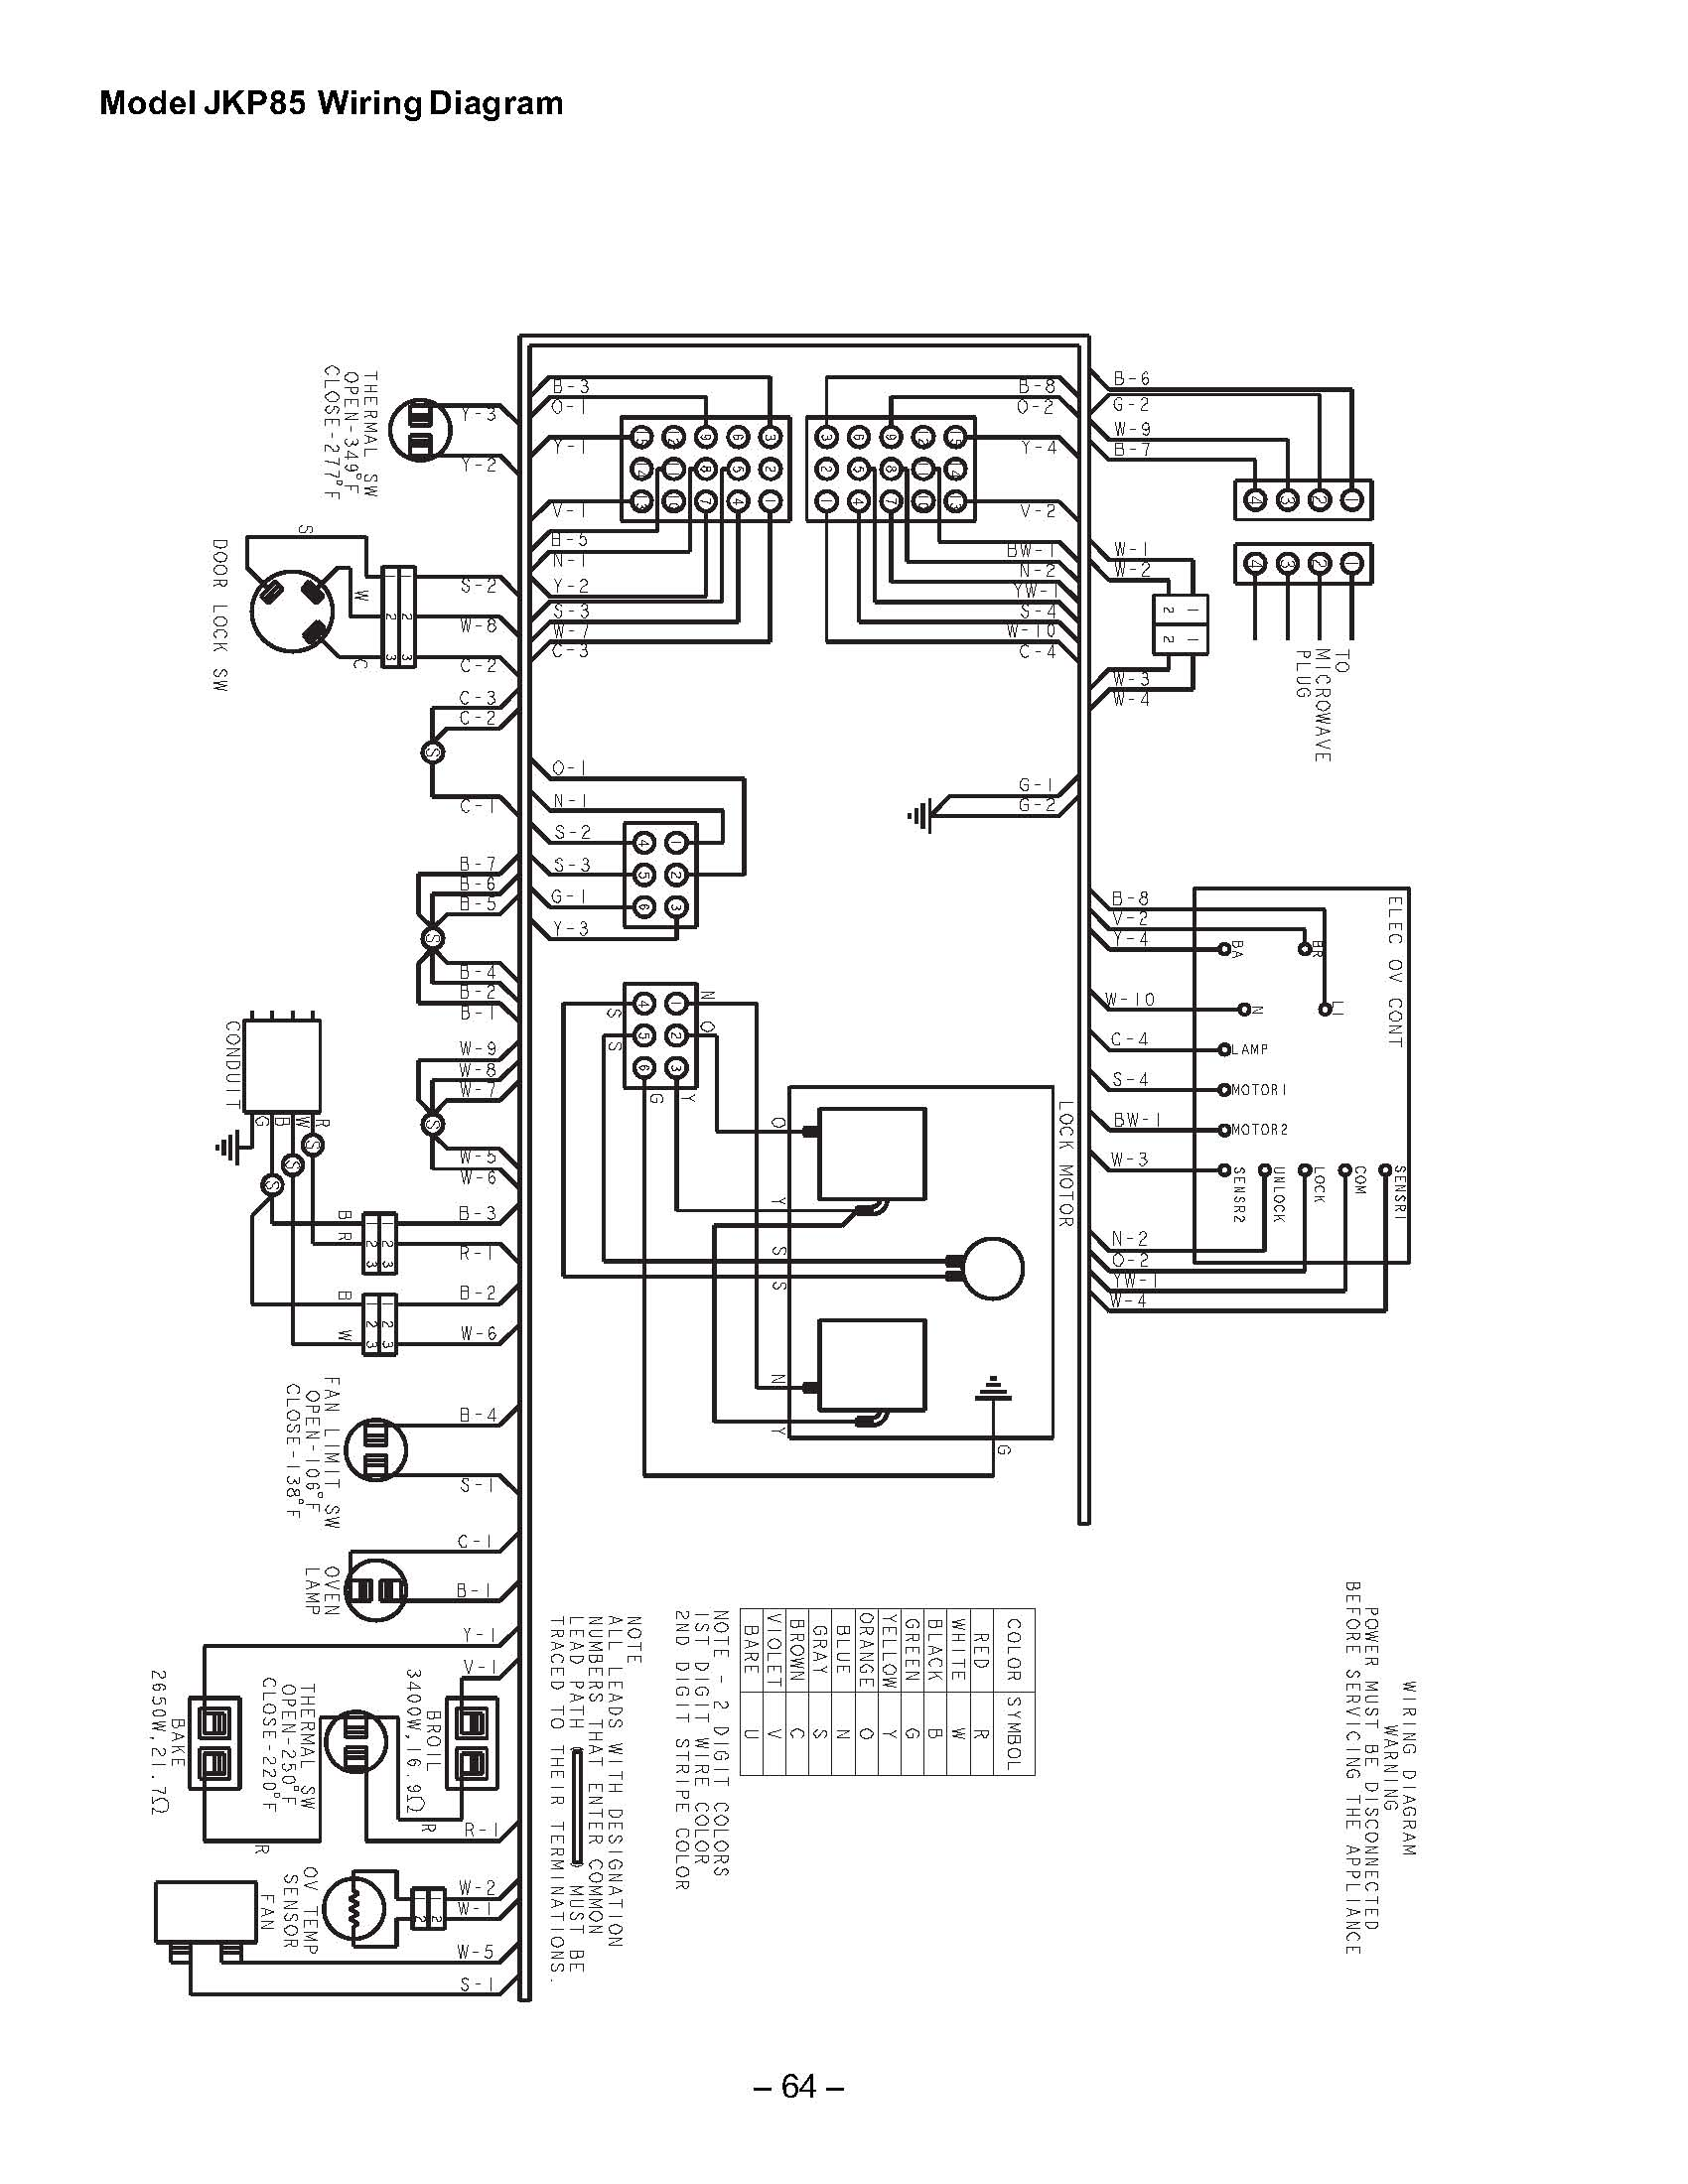 2011 04 22_120234_c_wiring_diagra__jkp90sm2ss_wall_oven?quality\\\\\\\=80\\\\\\\&strip\\\\\\\=all besam sl500 wiring diagram wiring diagram images besam sw200i wiring diagram at edmiracle.co